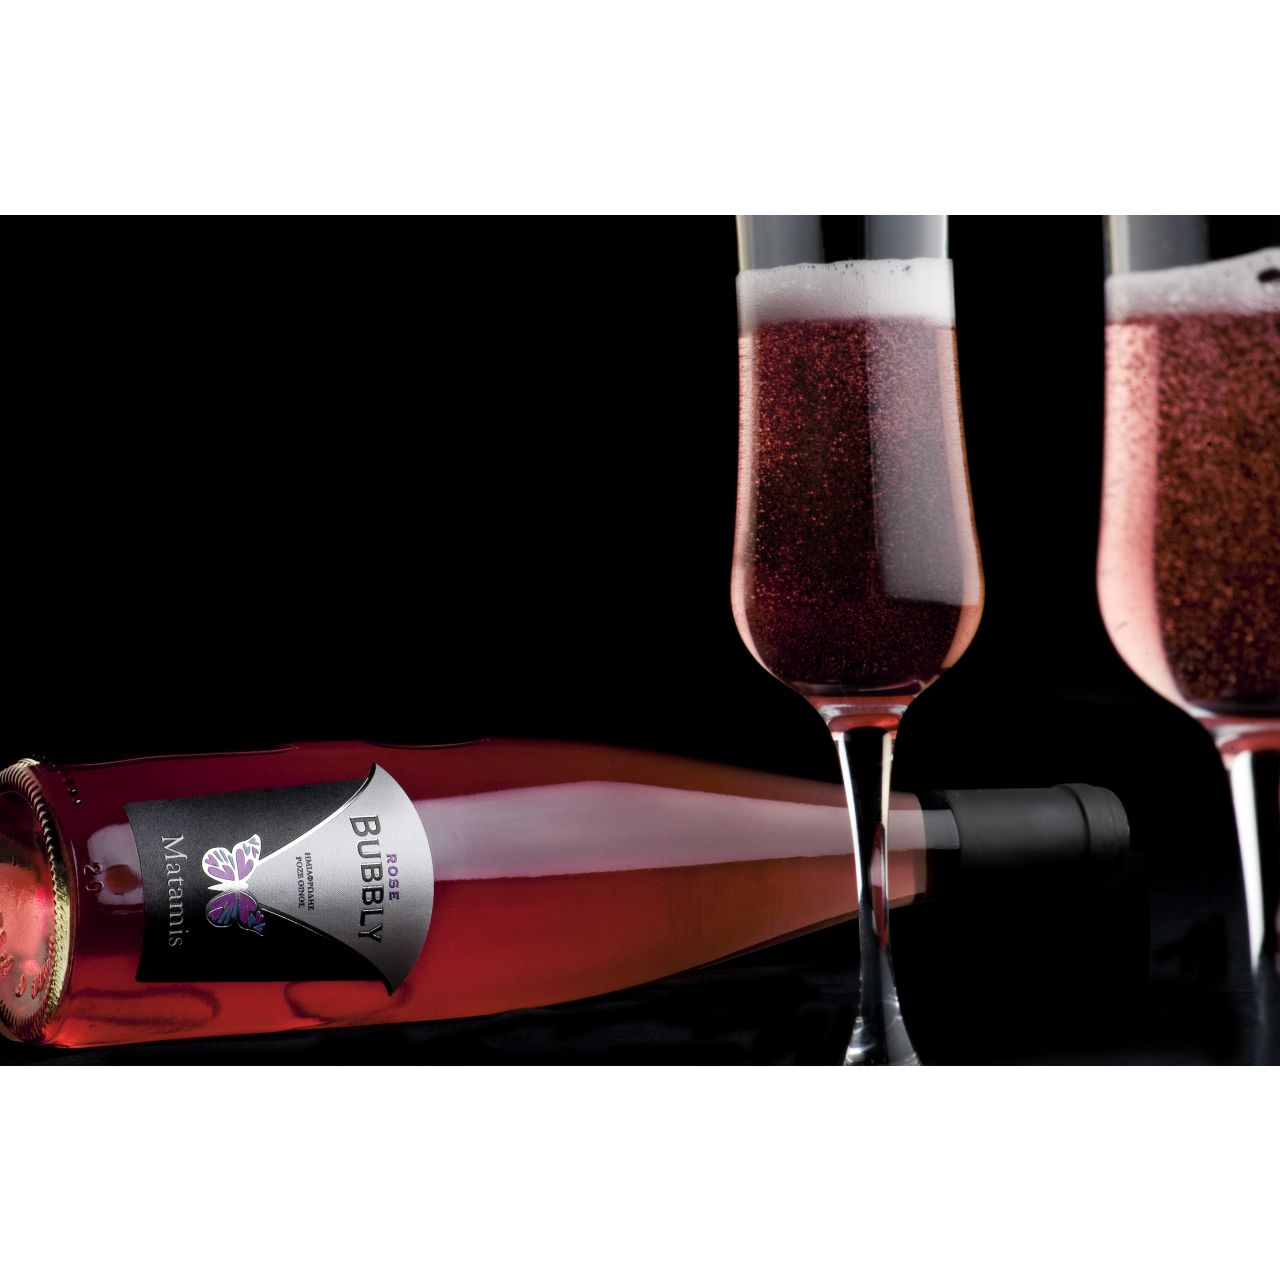 Vin Spumos Rose Bubbly Matamis Wines